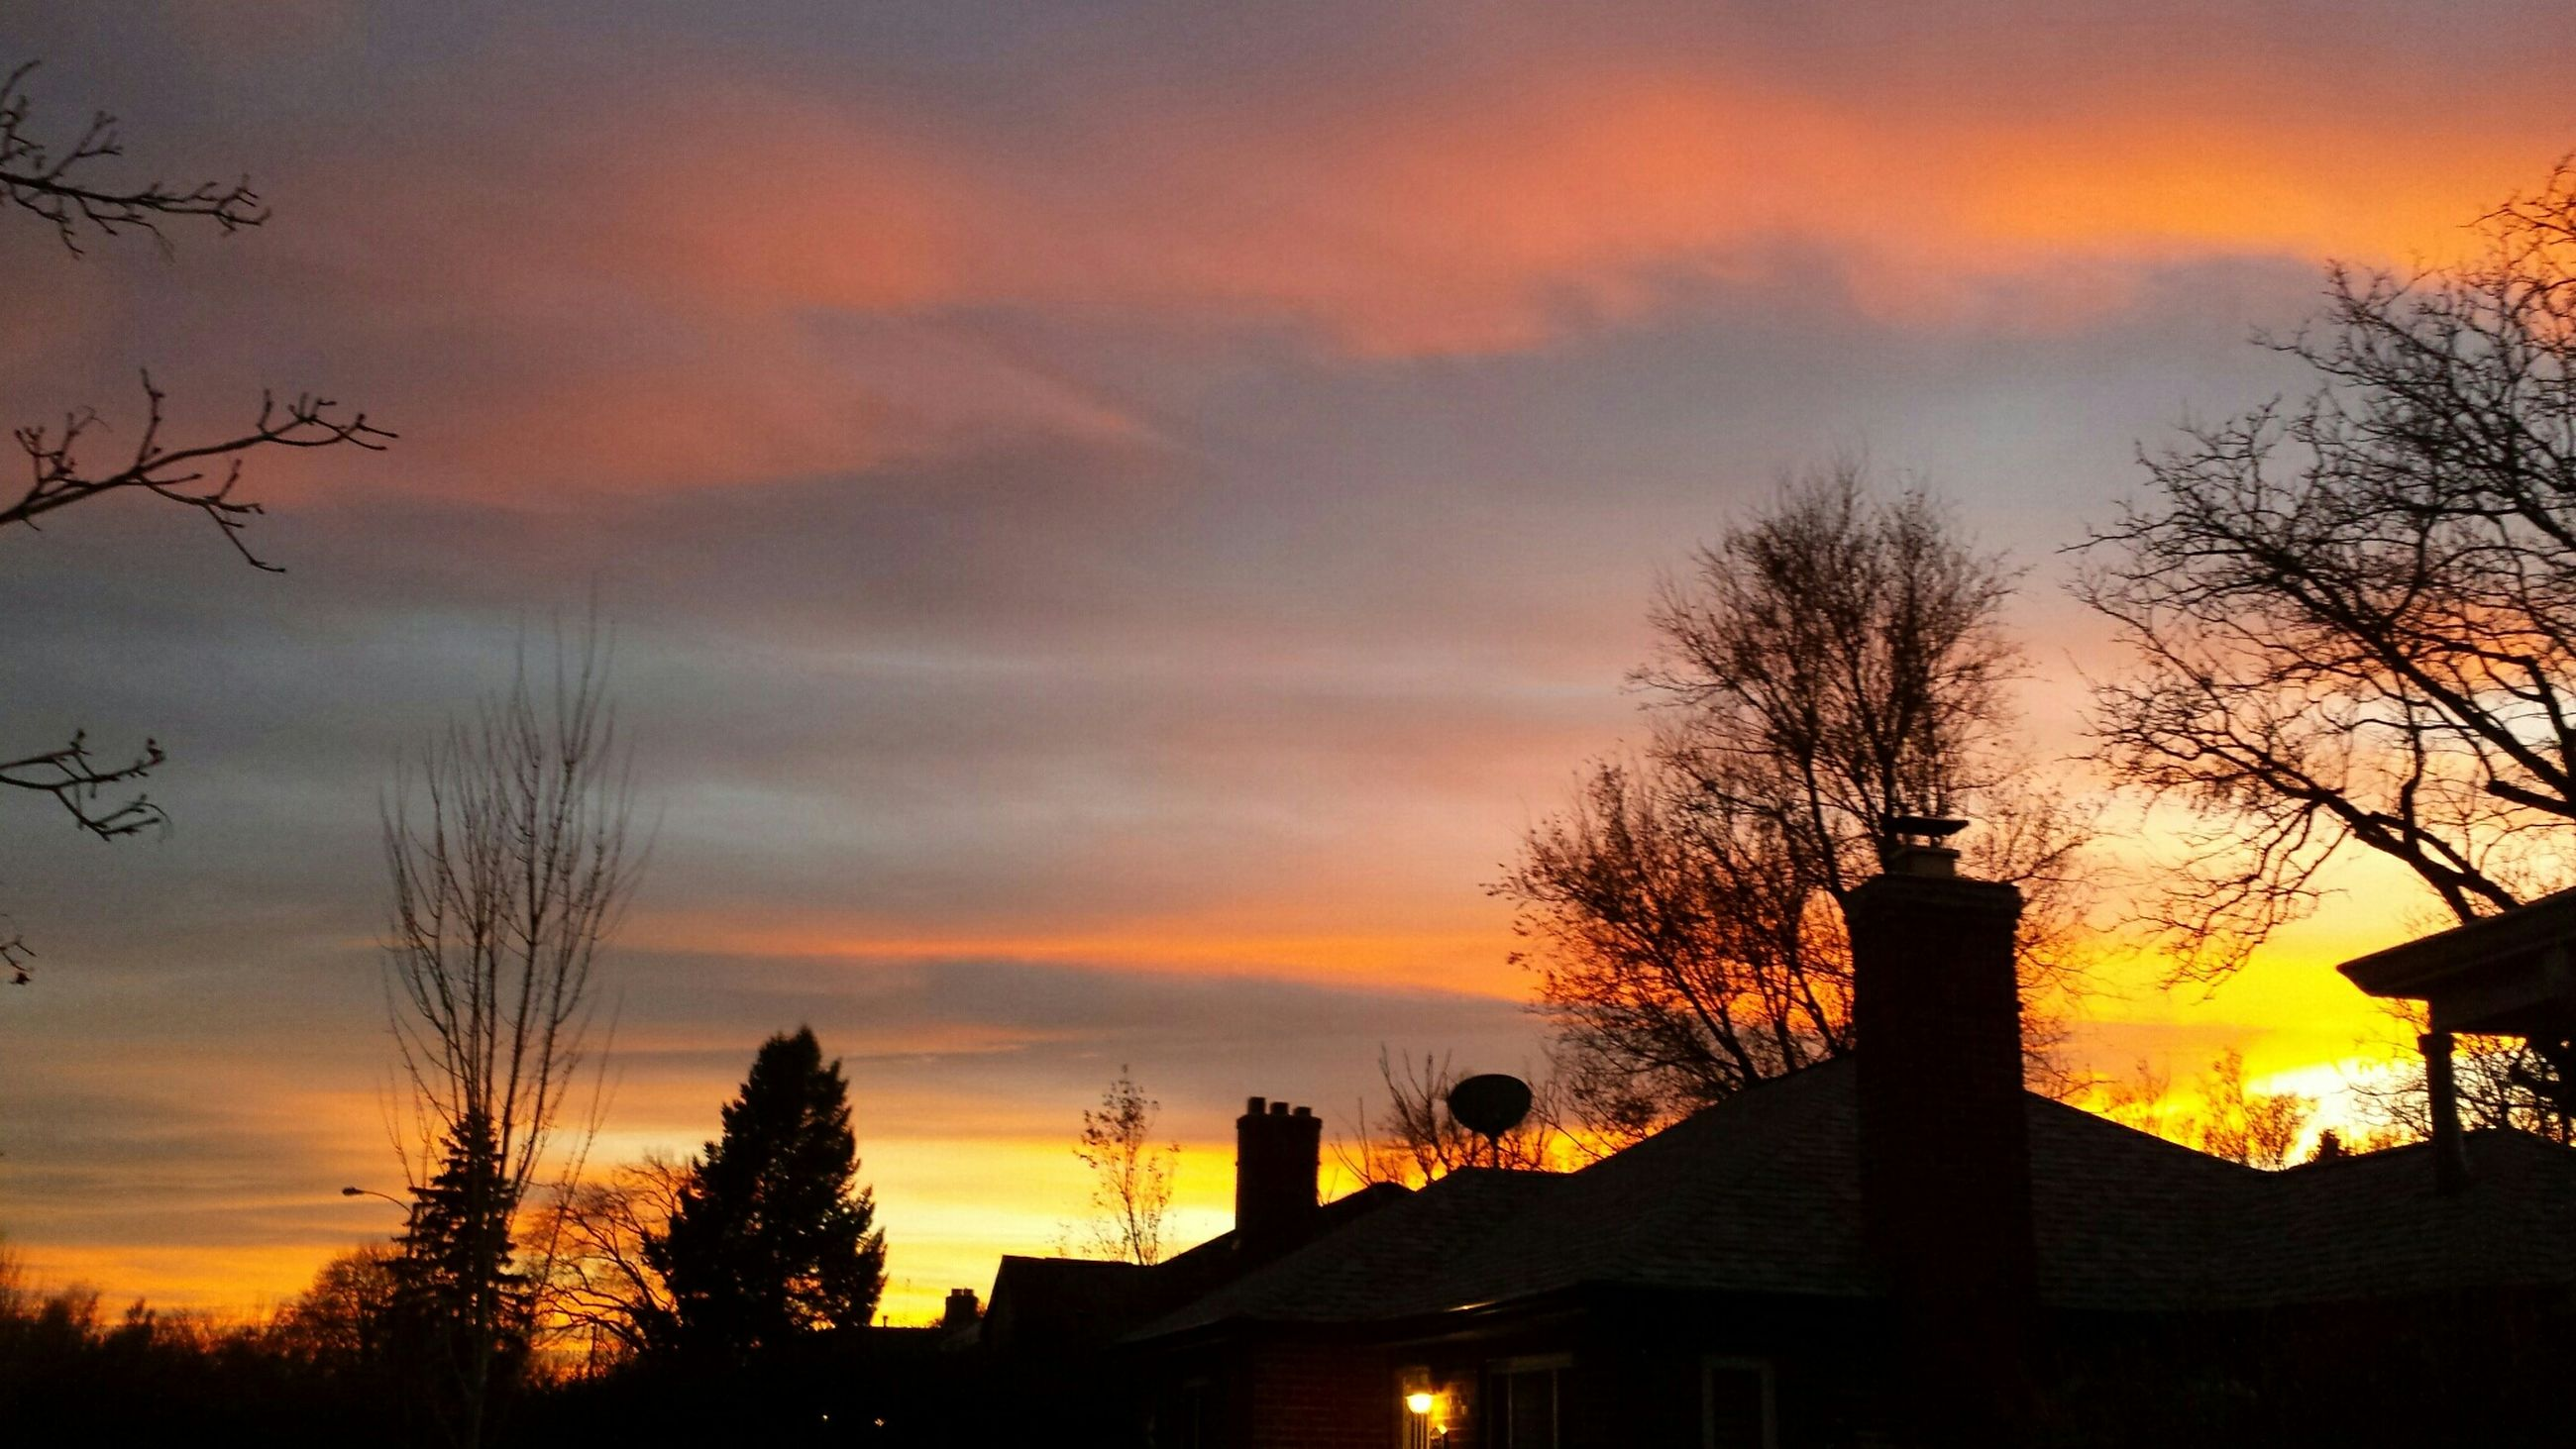 sunset, silhouette, orange color, sky, architecture, building exterior, built structure, tree, cloud - sky, low angle view, beauty in nature, bare tree, scenics, dramatic sky, nature, house, moody sky, cloud, idyllic, dusk